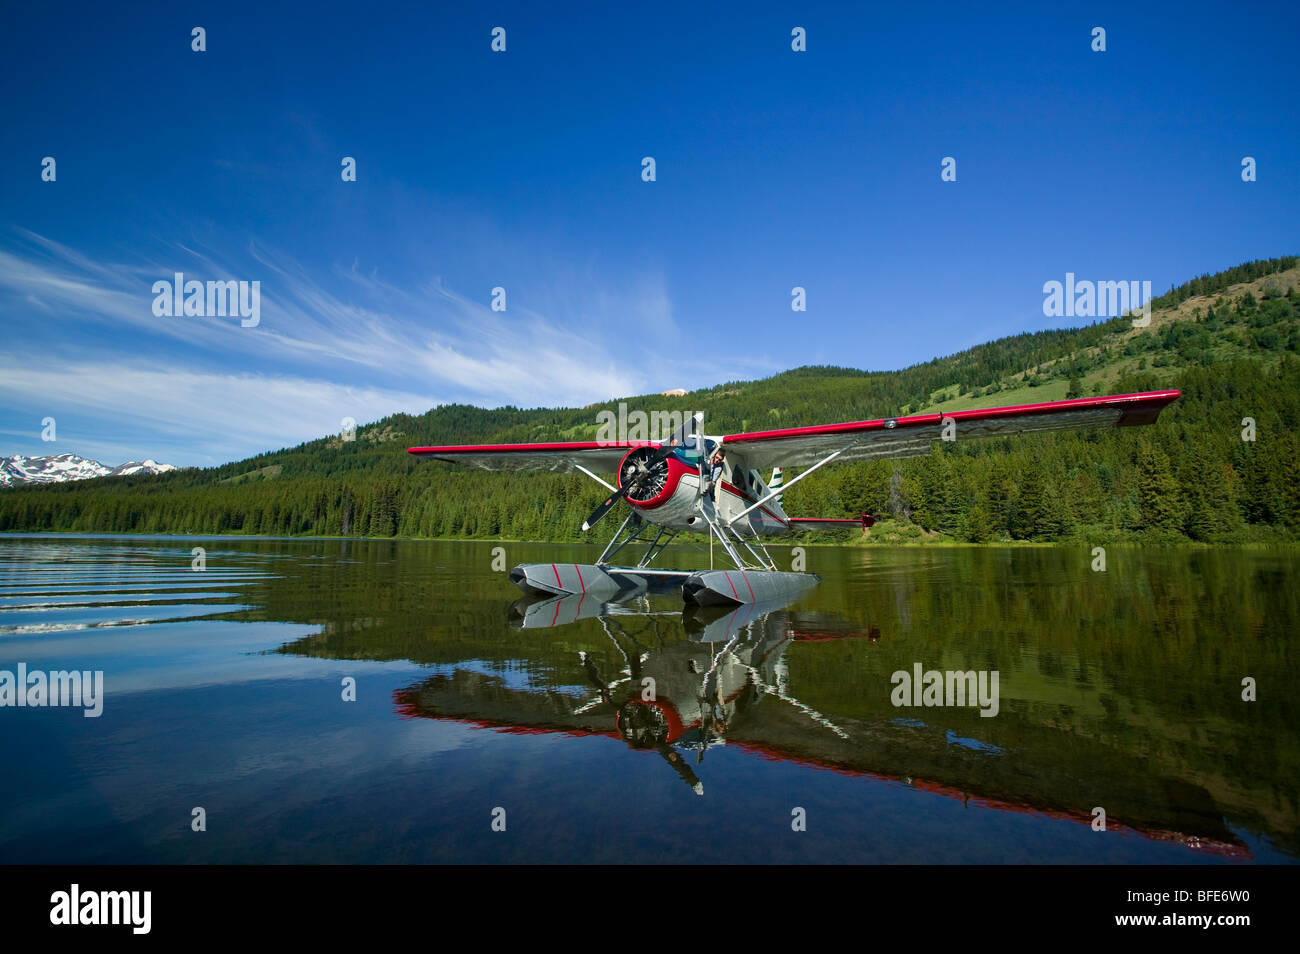 The venerable Beaver floatplane,, Spruce Lake, Southern Chilcotin Mountains, British Columbia, Canada - Stock Image